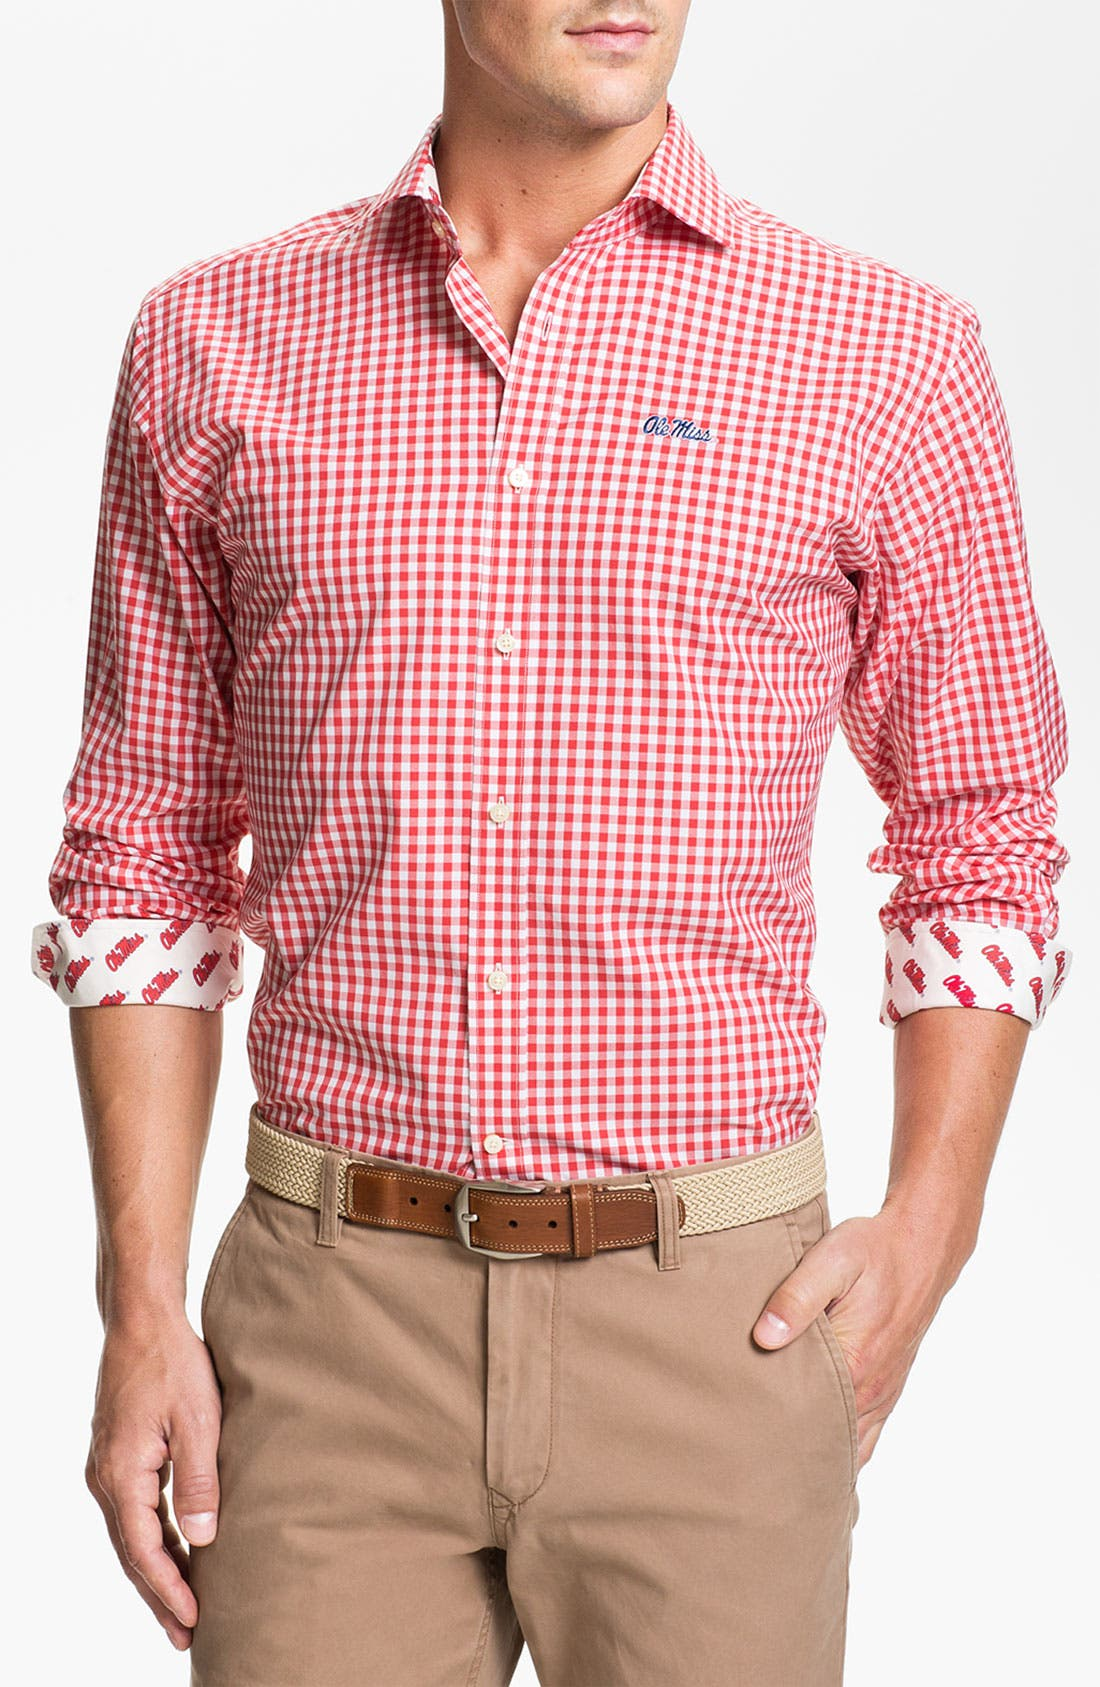 Alternate Image 1 Selected - Thomas Dean 'University of Mississippi' Gingham Sport Shirt